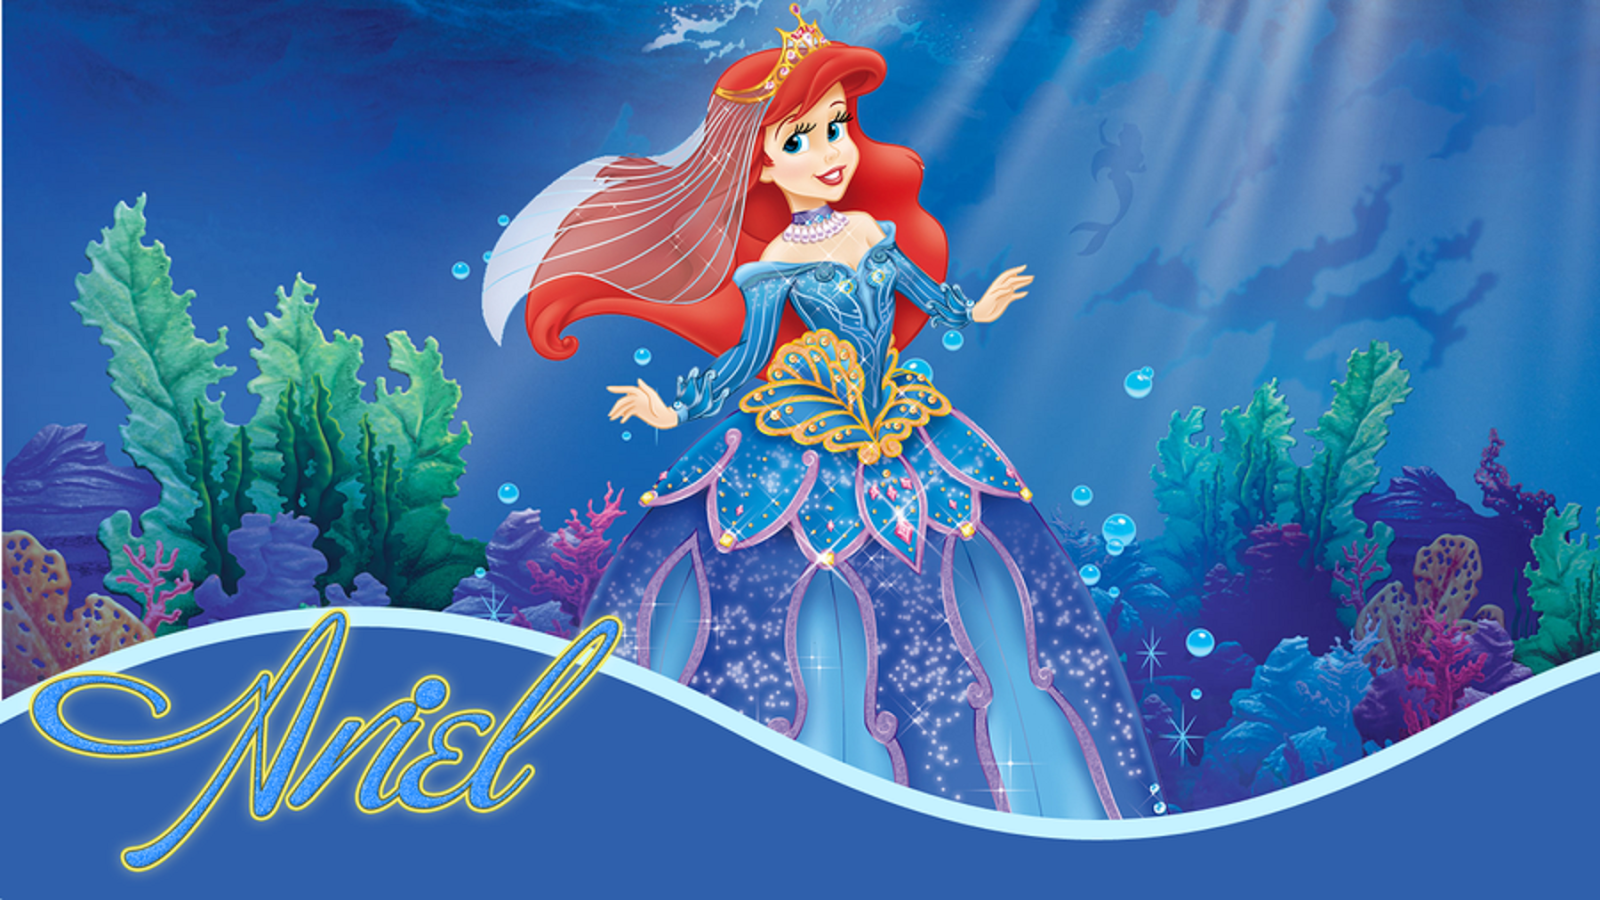 Disney HD Wallpapers: Walt Disney Princess Ariel HD Wallpapers